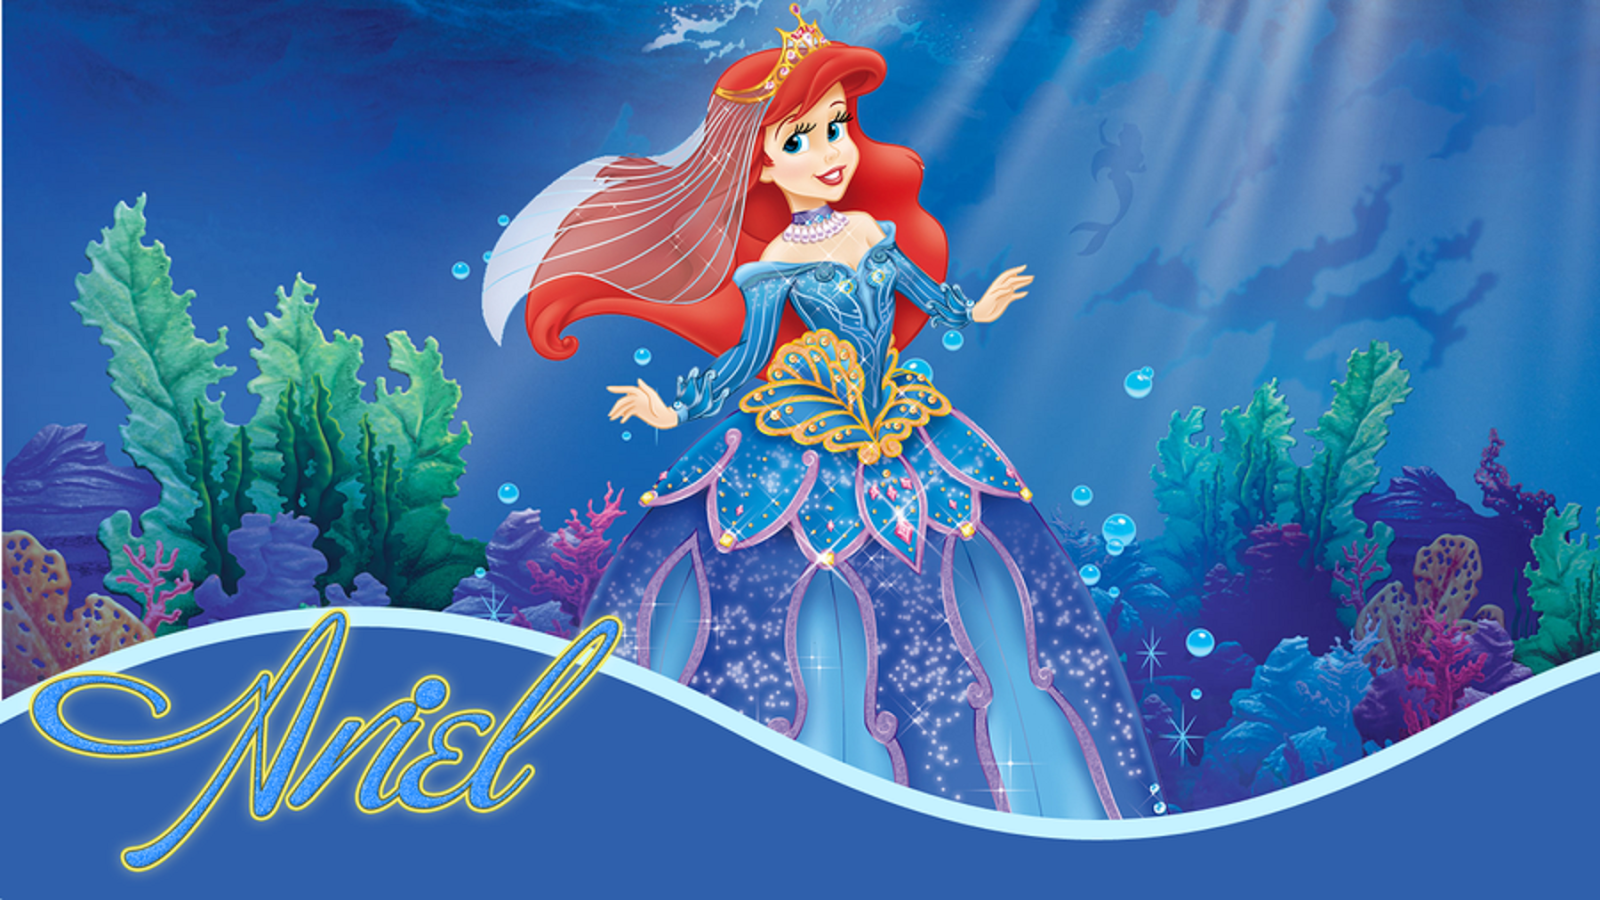 Disney HD Wallpapers: Walt Disney Princess Ariel HD Wallpapers